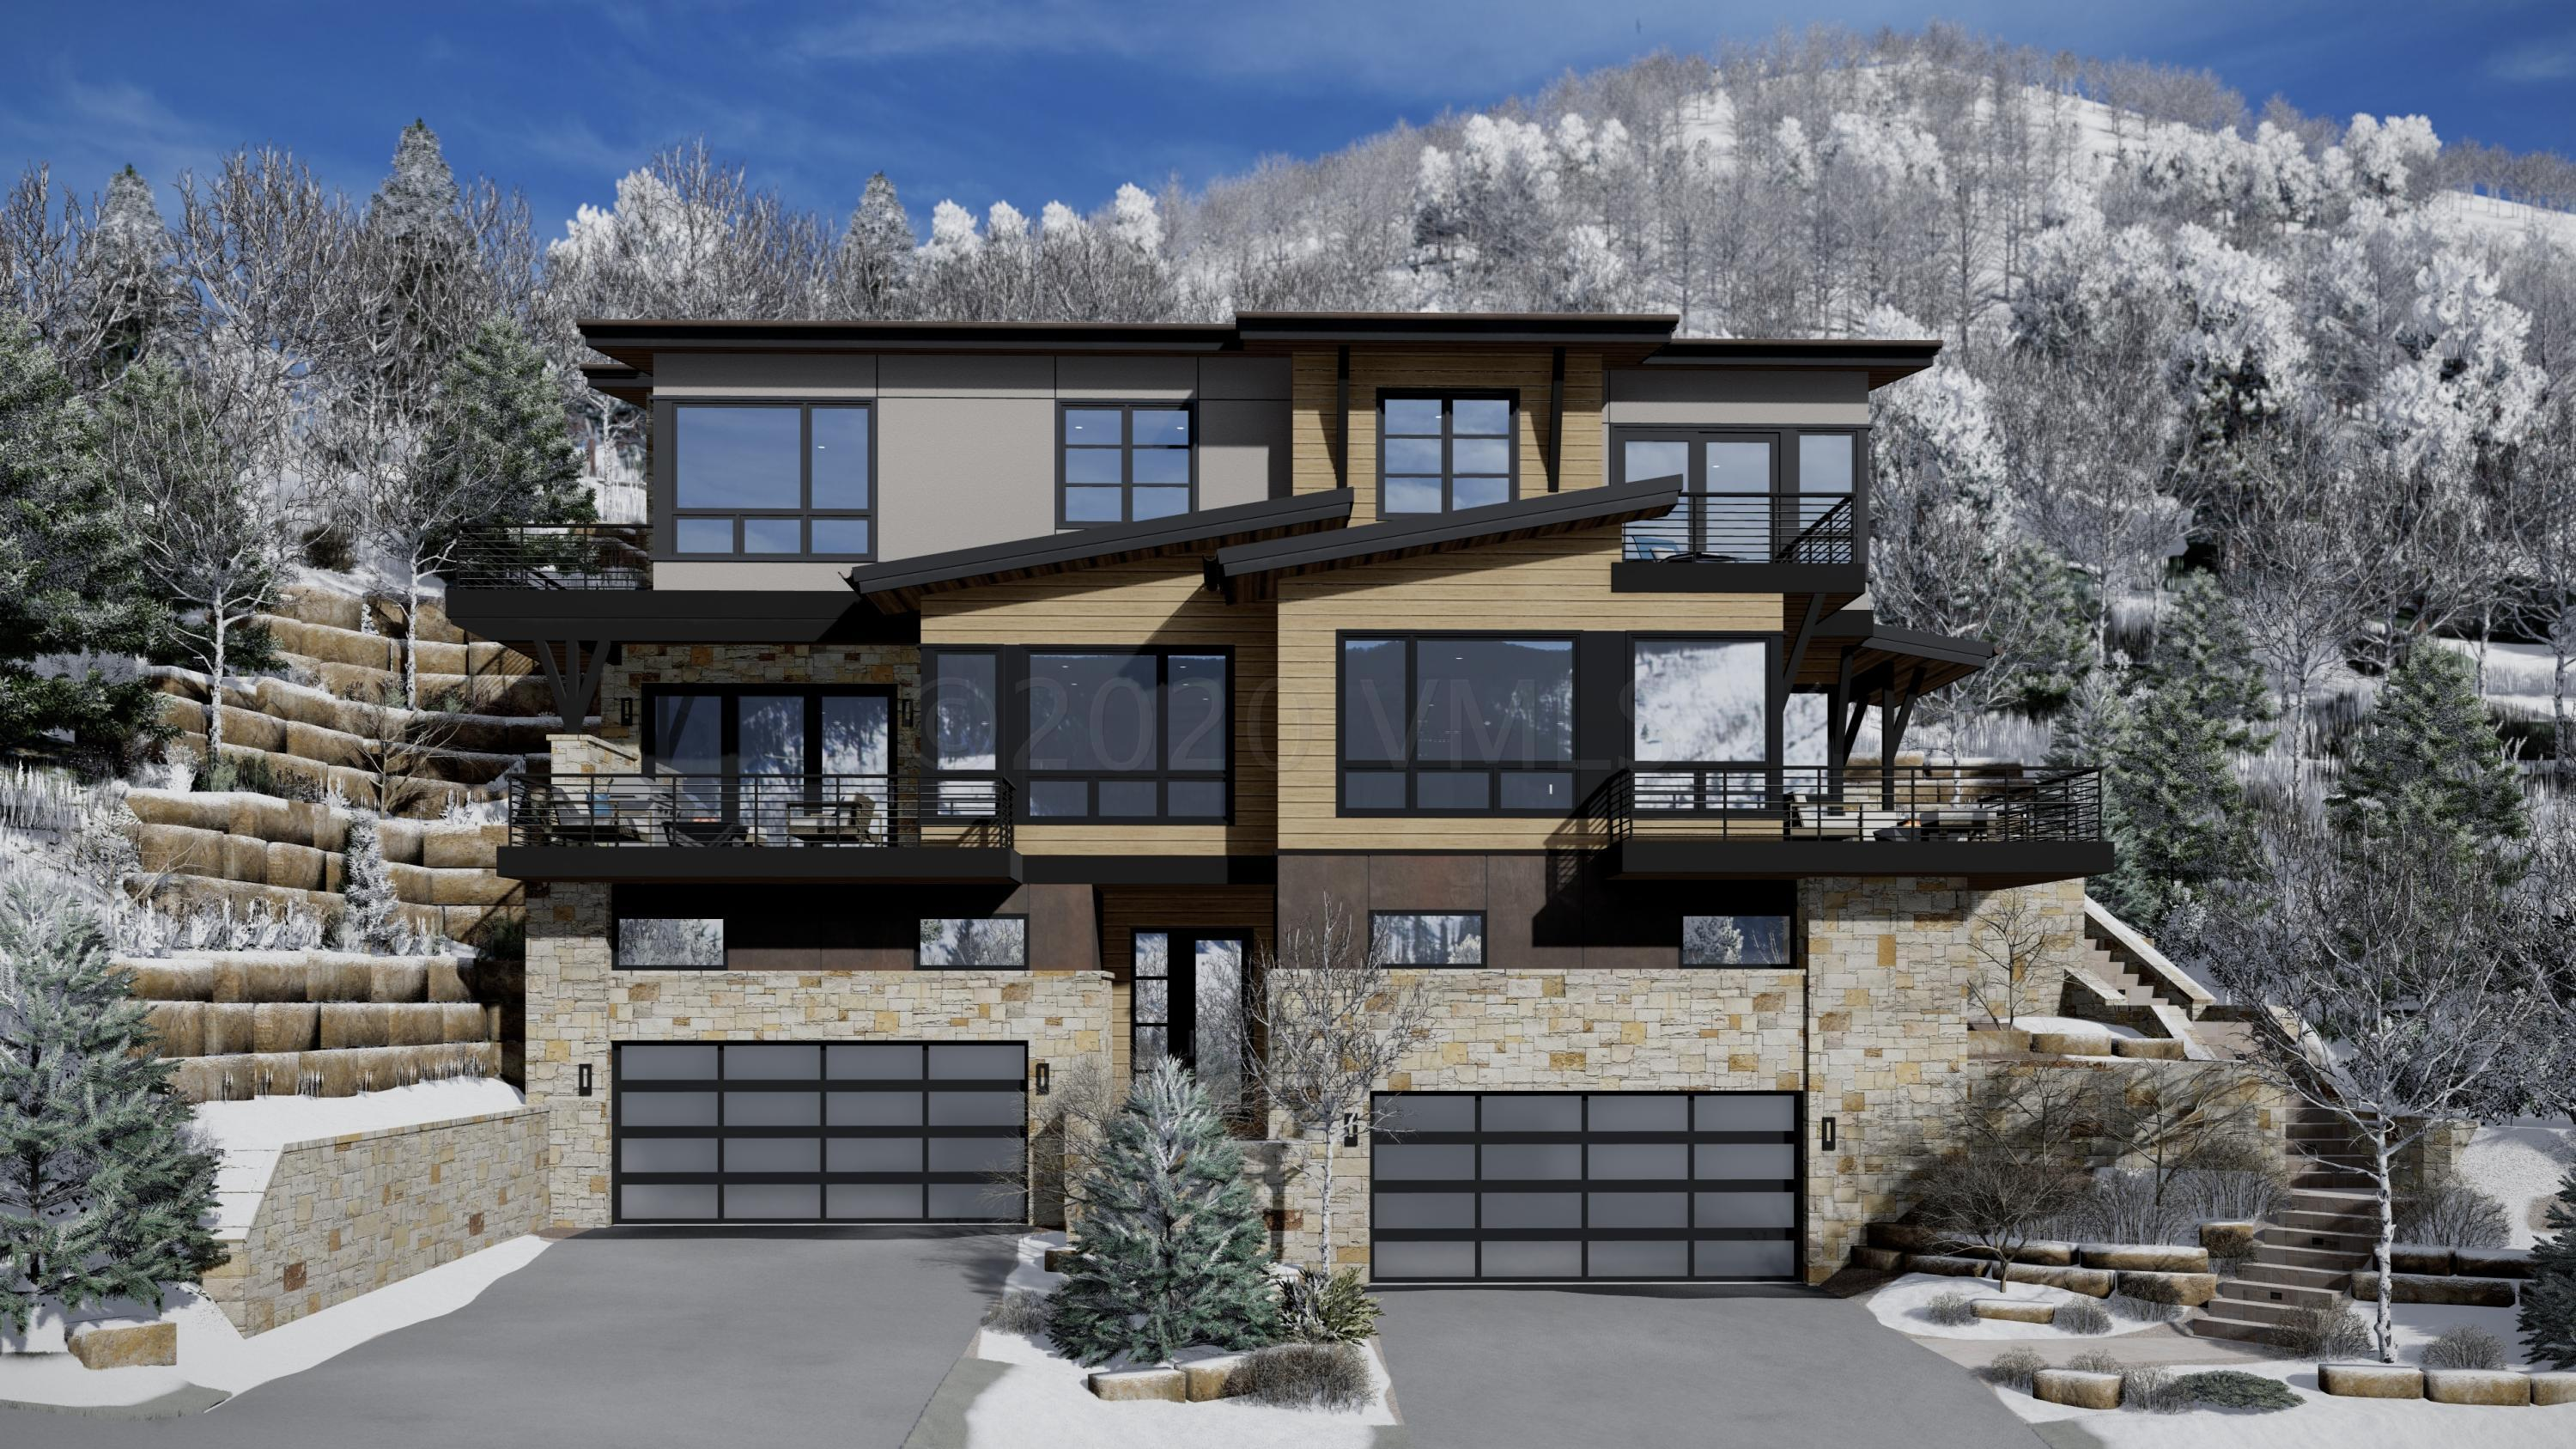 This new construction mountain modern masterpiece designed by Scott Turnipseed brings the outdoors in. Take in the sweeping, south-facing, sun drenched mountain views which are among the Vail Valley's best vistas. The dramatic living room features a floor-to-ceiling slate grey Astria-Rhapsody fireplace, and expansive windows encapsulating the lush vegetation just west of the Vail mountain ski slopes.  The fireplace serves as the centerpiece of the room separating the living room from the dining area as part of the open floor plan on the main level.  With a clean and contemporary design coupled with a serene ambiance, enjoy effortless living. The gourmet kitchen has modern details and a sophisticated design, featuring ultra white quartz countertops, gorgeous imported Arrex Le Cucine Italian cabinets and white oak floors.  Additionally, the high-end appliances shall be appreciated by the most critically acclaimed chefs including Subzero and Wolf, Brizo hardware and fixtures, Italian Barausse Feel Plus Doors in a Otter color with a trimless drywall return, and designer lighting that is both great for gloomy days or sets just the right mood for evenings.  The bright and open kitchen flows beautifully into the dining area, bar, living room and the outdoor patio. The master suite has incredible views and the bathroom has gorgeous grey glass tile.  All bathrooms have European glass and curbless entry, Brizo fixtures, and unique materials from one another but all have that same consistent feel within the home. The modern bunk room also has a sitting area for kids to watch a movie or play games. The entrance to the house has a convenient mud room for a houseful of active people with plenty of room for gear.  What doesn't make sense to be kept indoors has plenty of space in the 2-car garage.With limited inventory of new construction, we invite you to discover this mountain contemporary design masterpiece. Estimated completion March 2021. Visit mls.West.NewVailHome